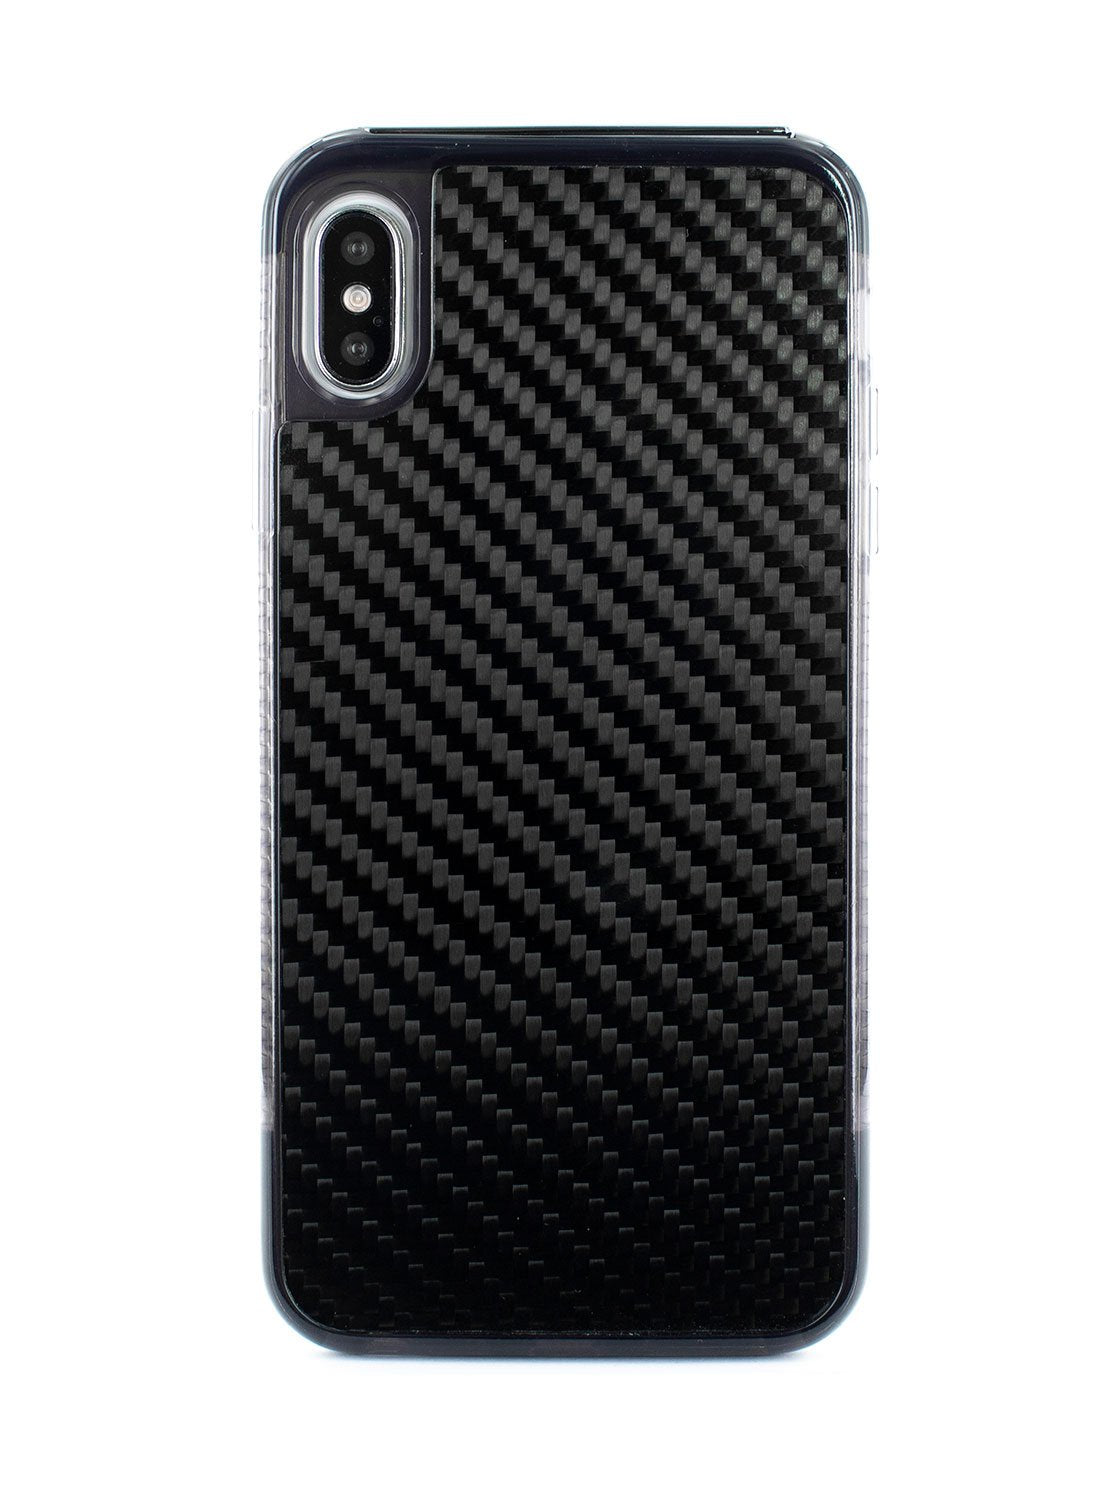 FLEX Anti Shock Kickstand Case for iPhone XS Max - Carbon Fibre